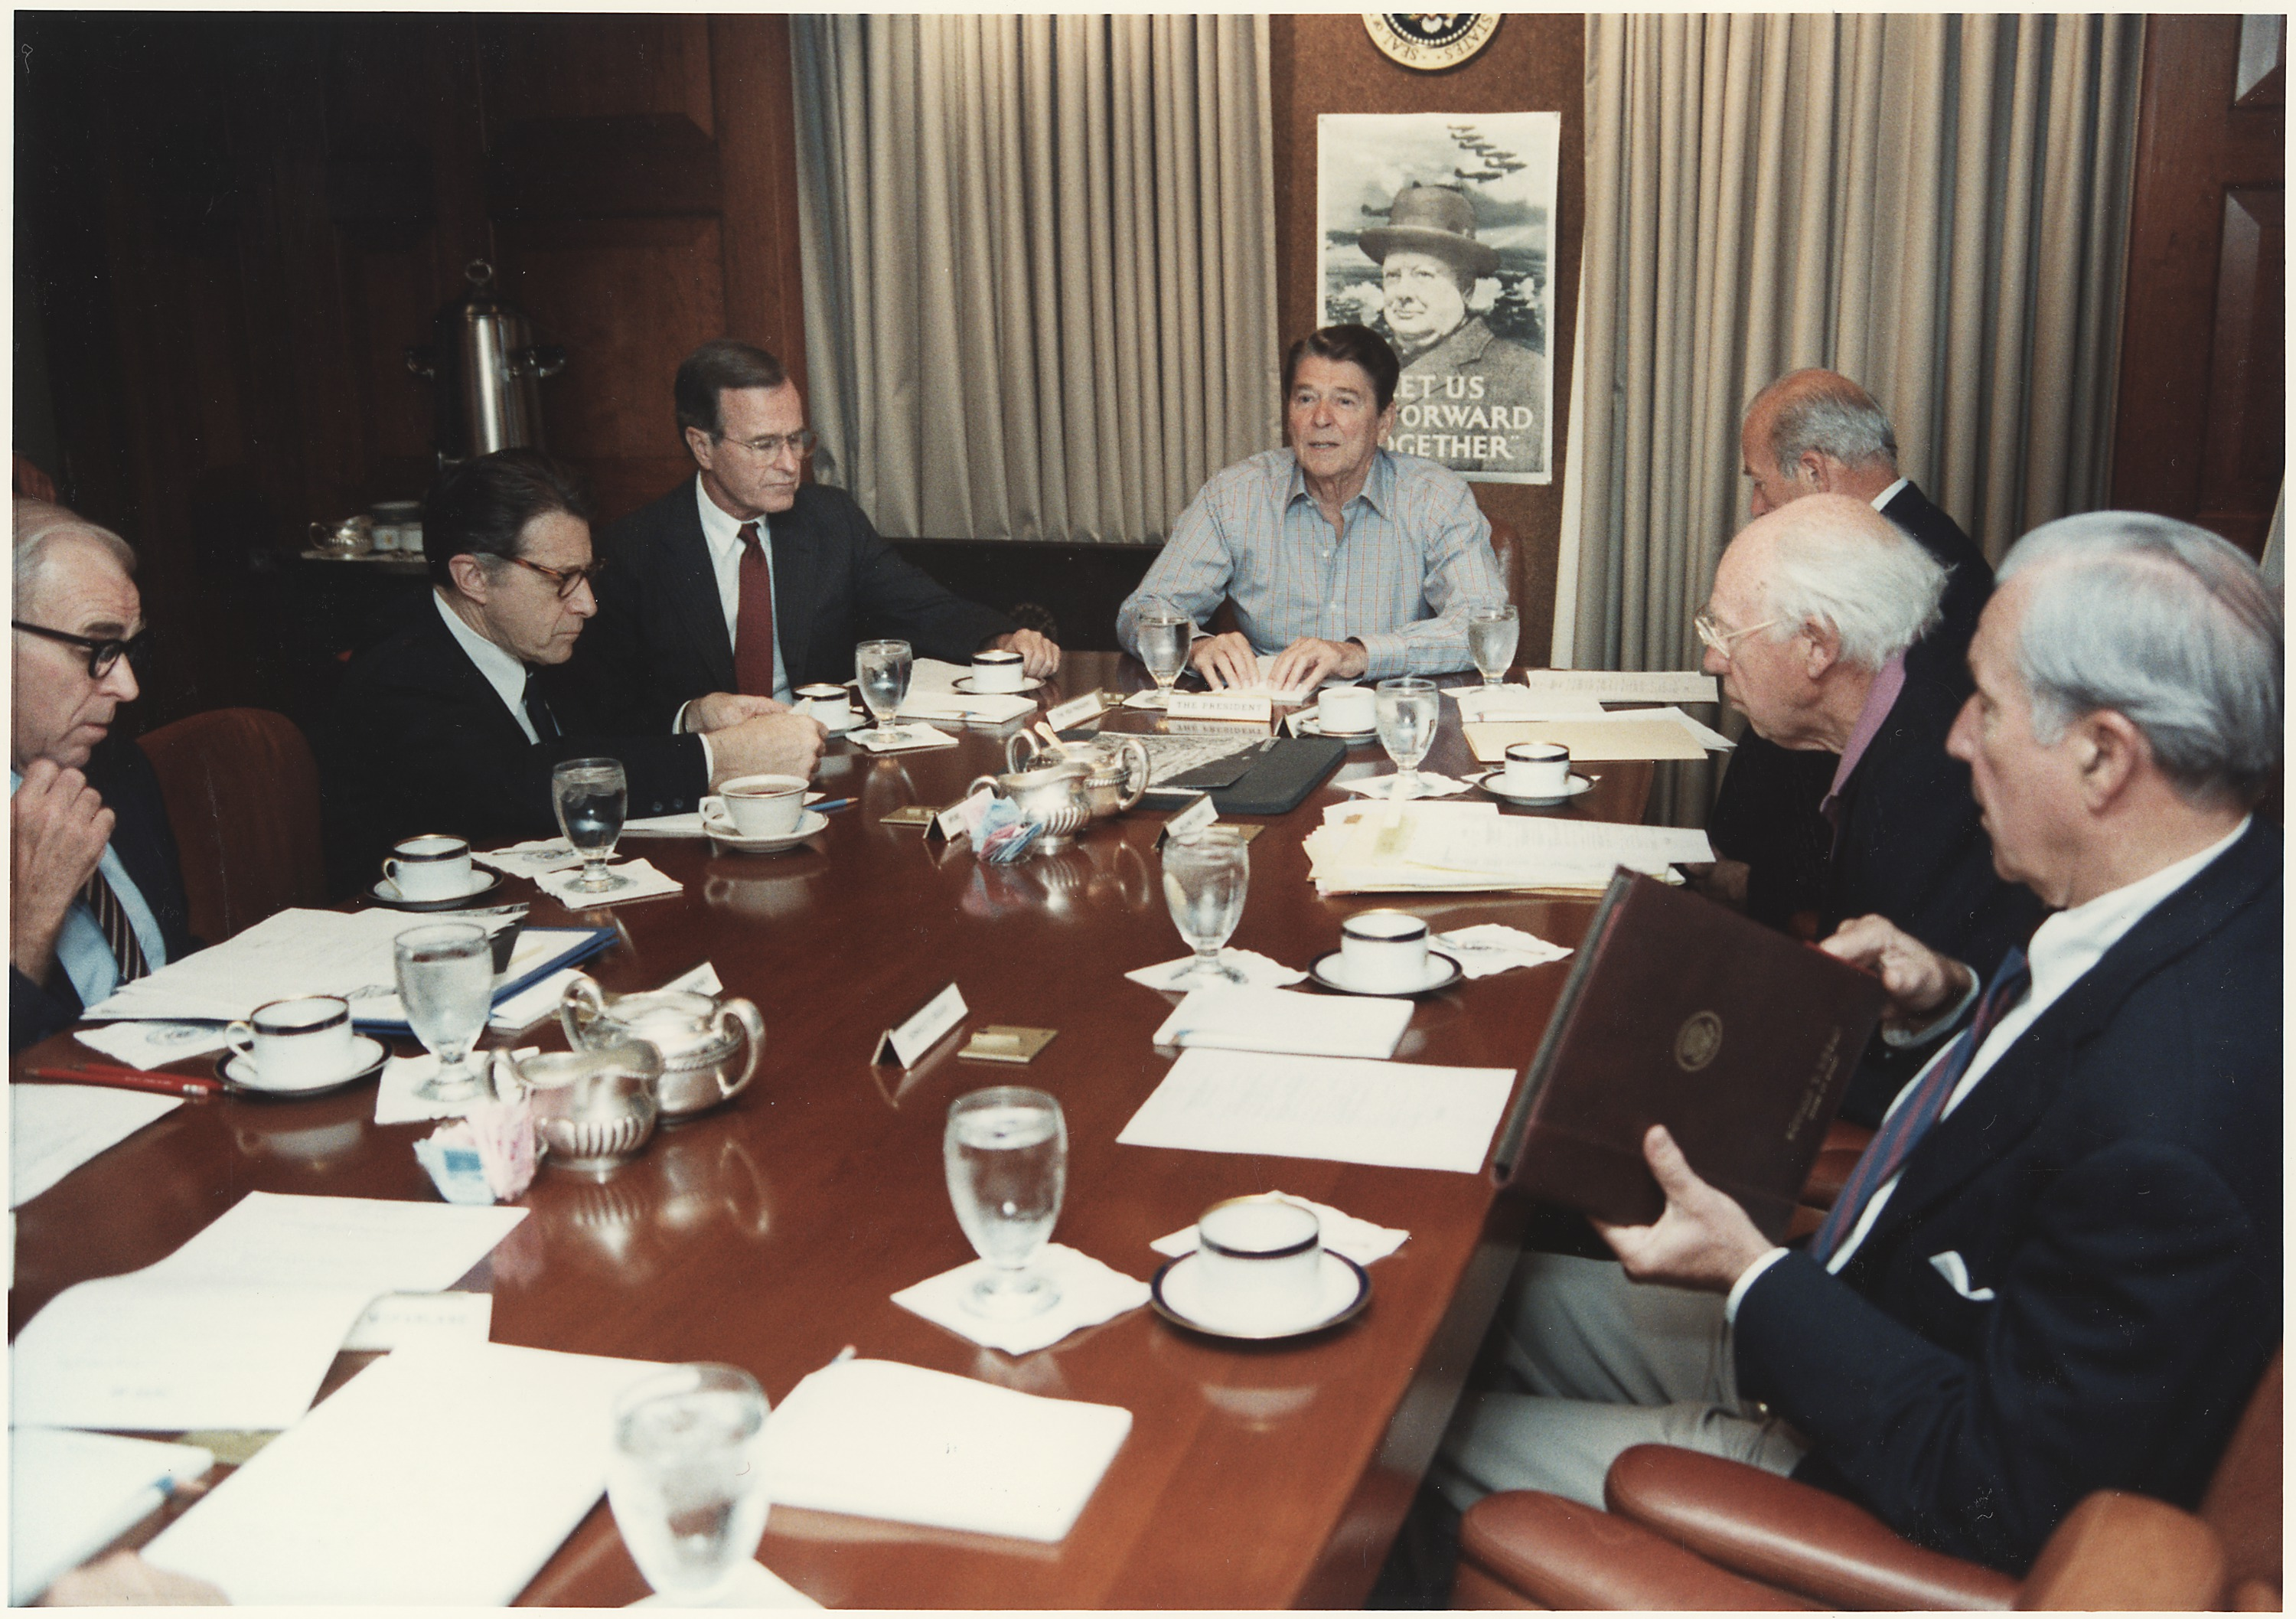 File:Photograph of President Reagan holding a National Security Council Meeting on the TWA hijacking, Situation Room - NARA - 198563.jpg - Wikimedia Commons